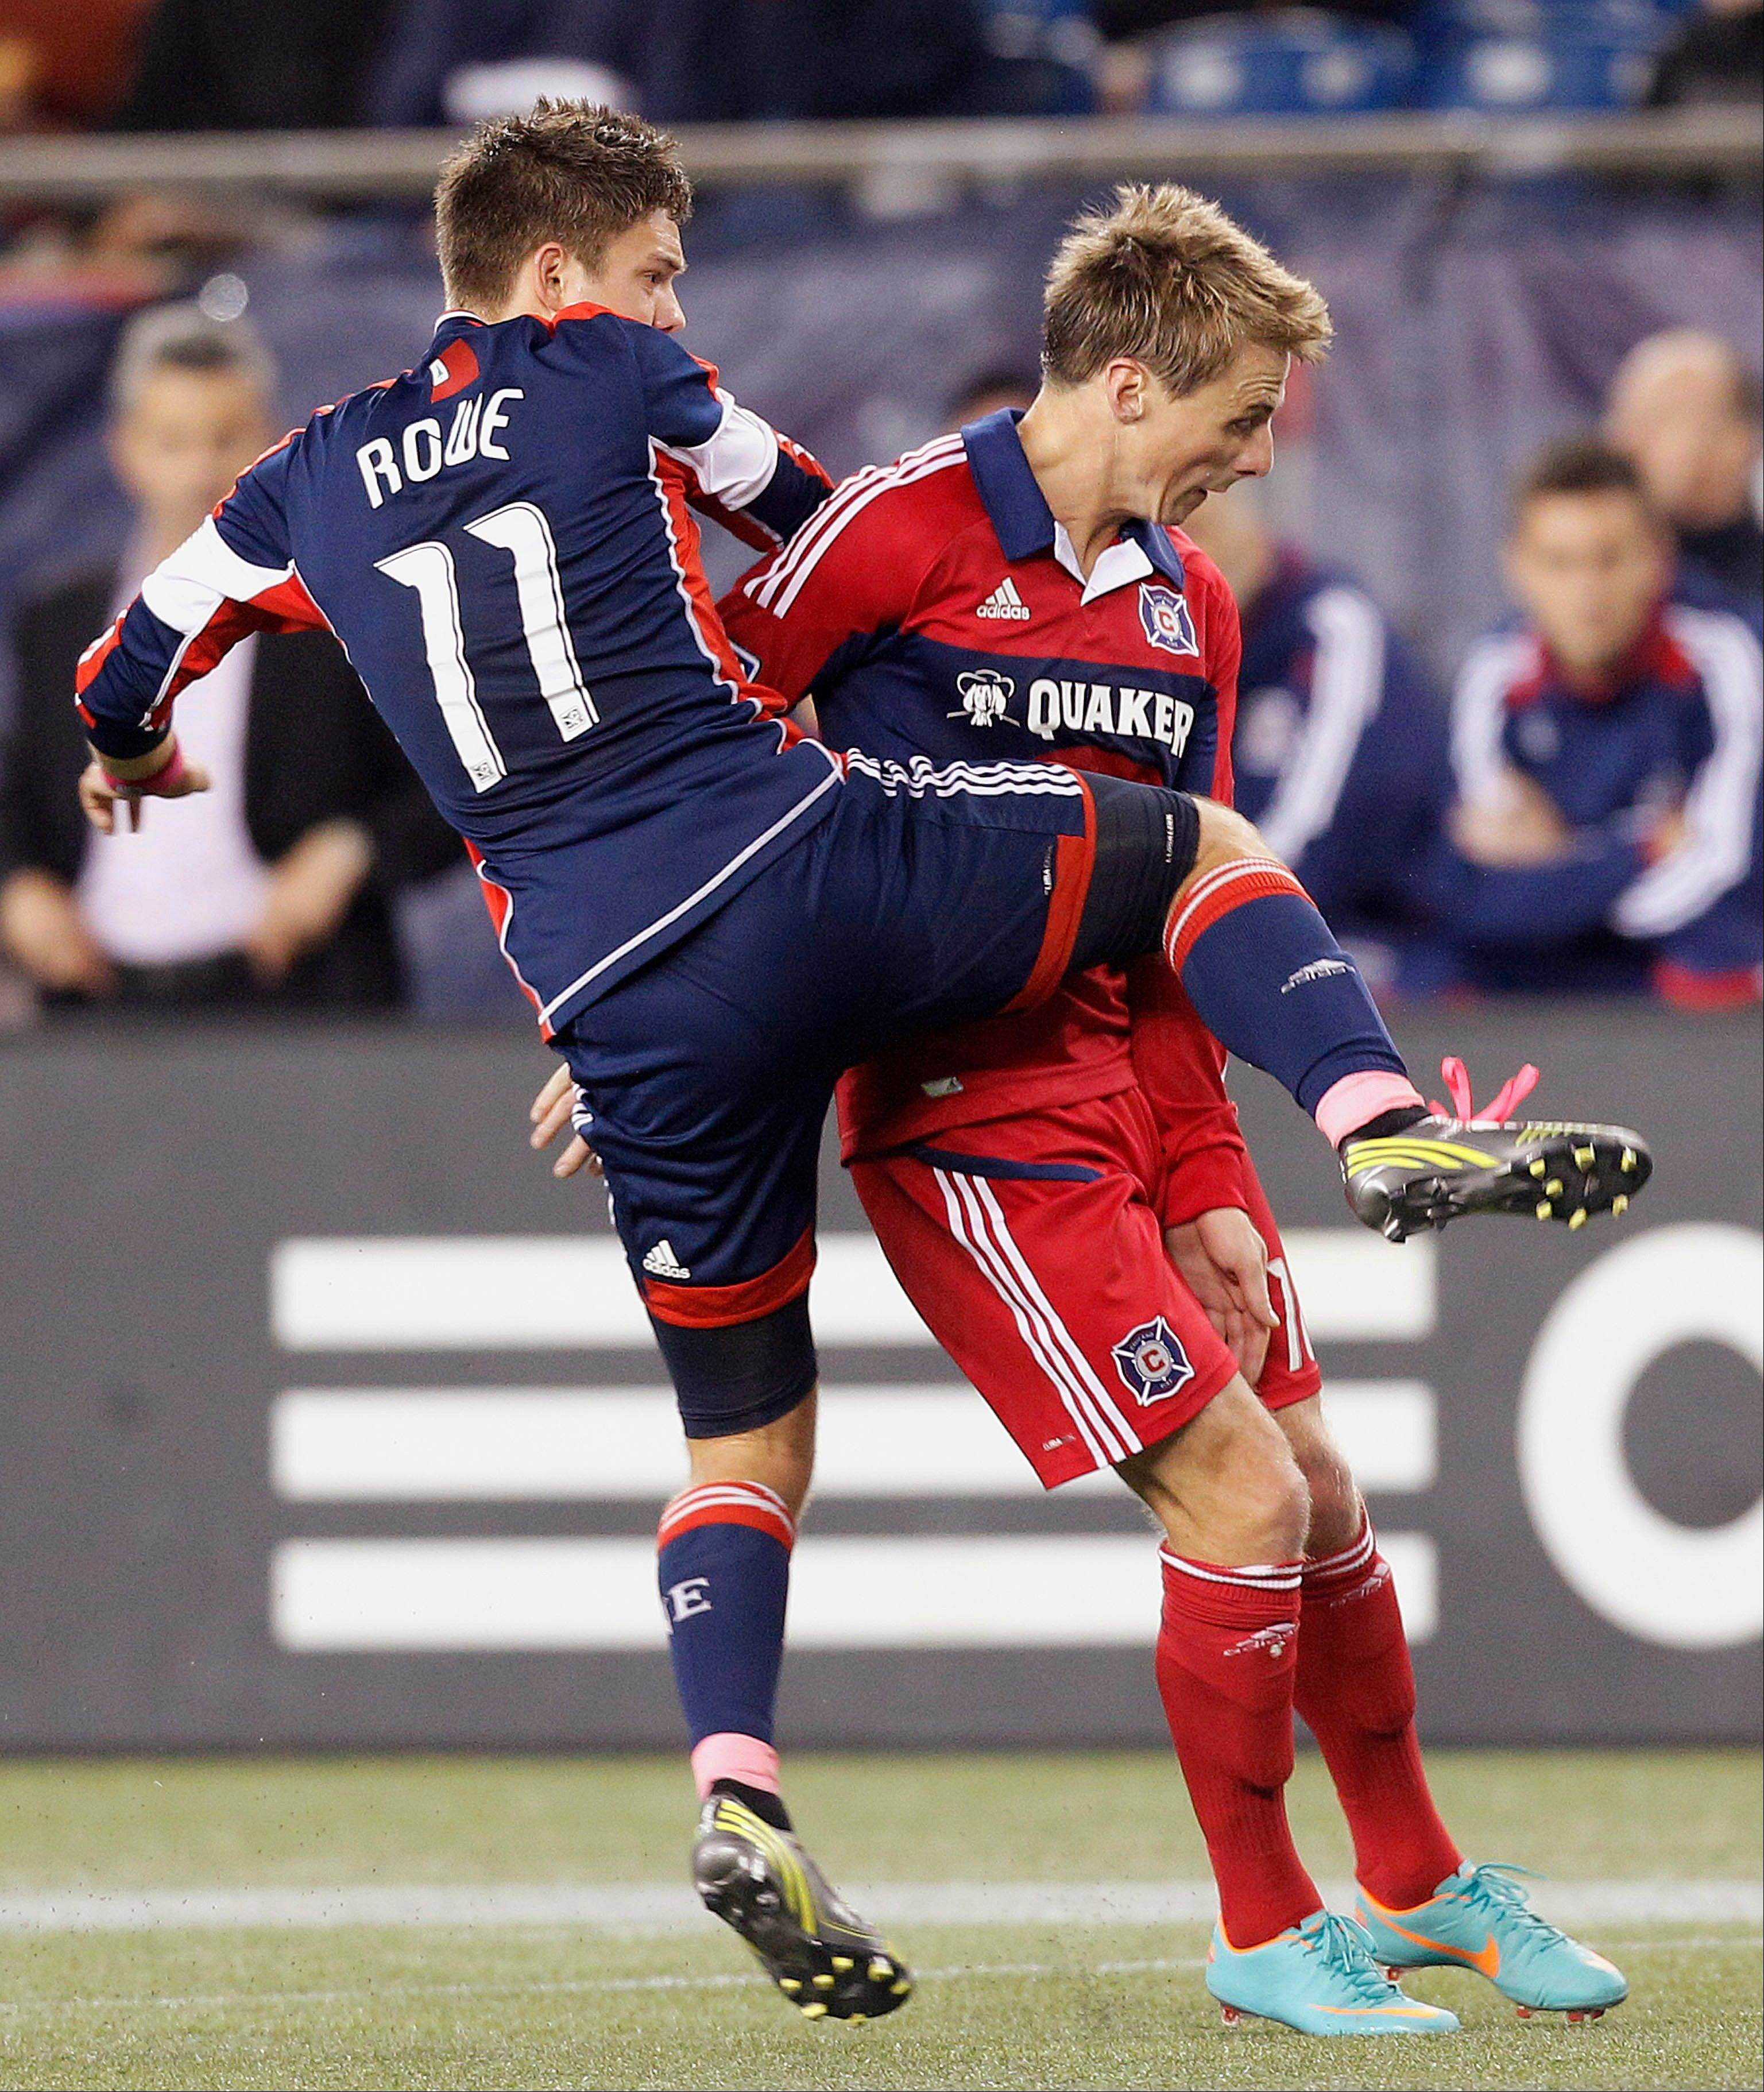 New England Revolution midfielder Kelyn Rowe (11) knees Chicago Fire forward Chris Rolfe during their MLS match in Foxborough, Mass., Saturday. The Revolution won 1-0.